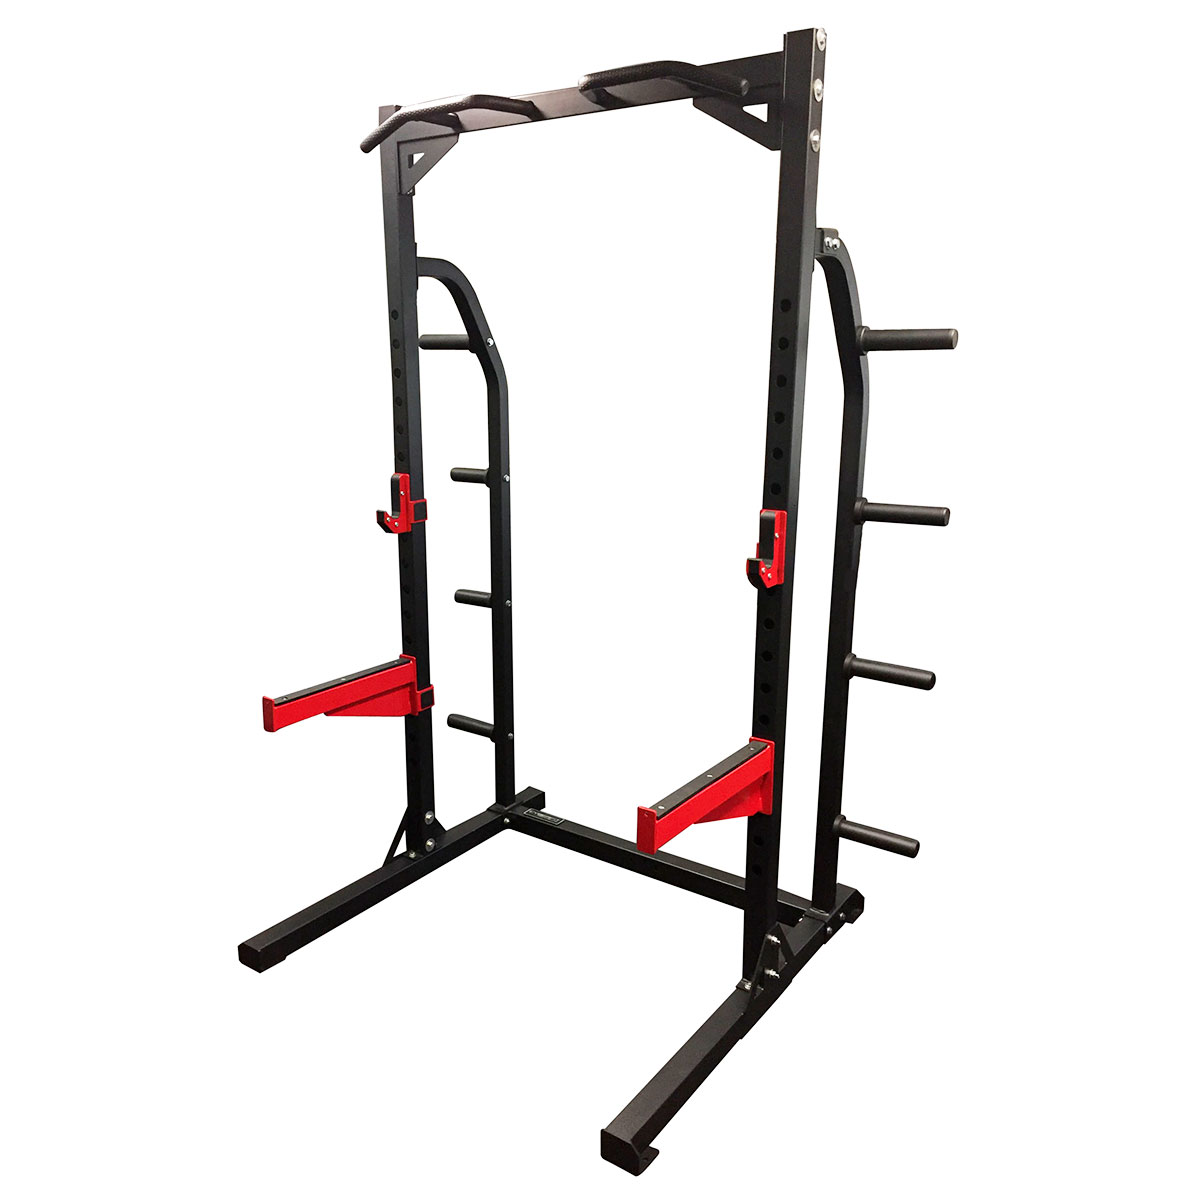 Half Squat Rack with Plate Storage Customisable